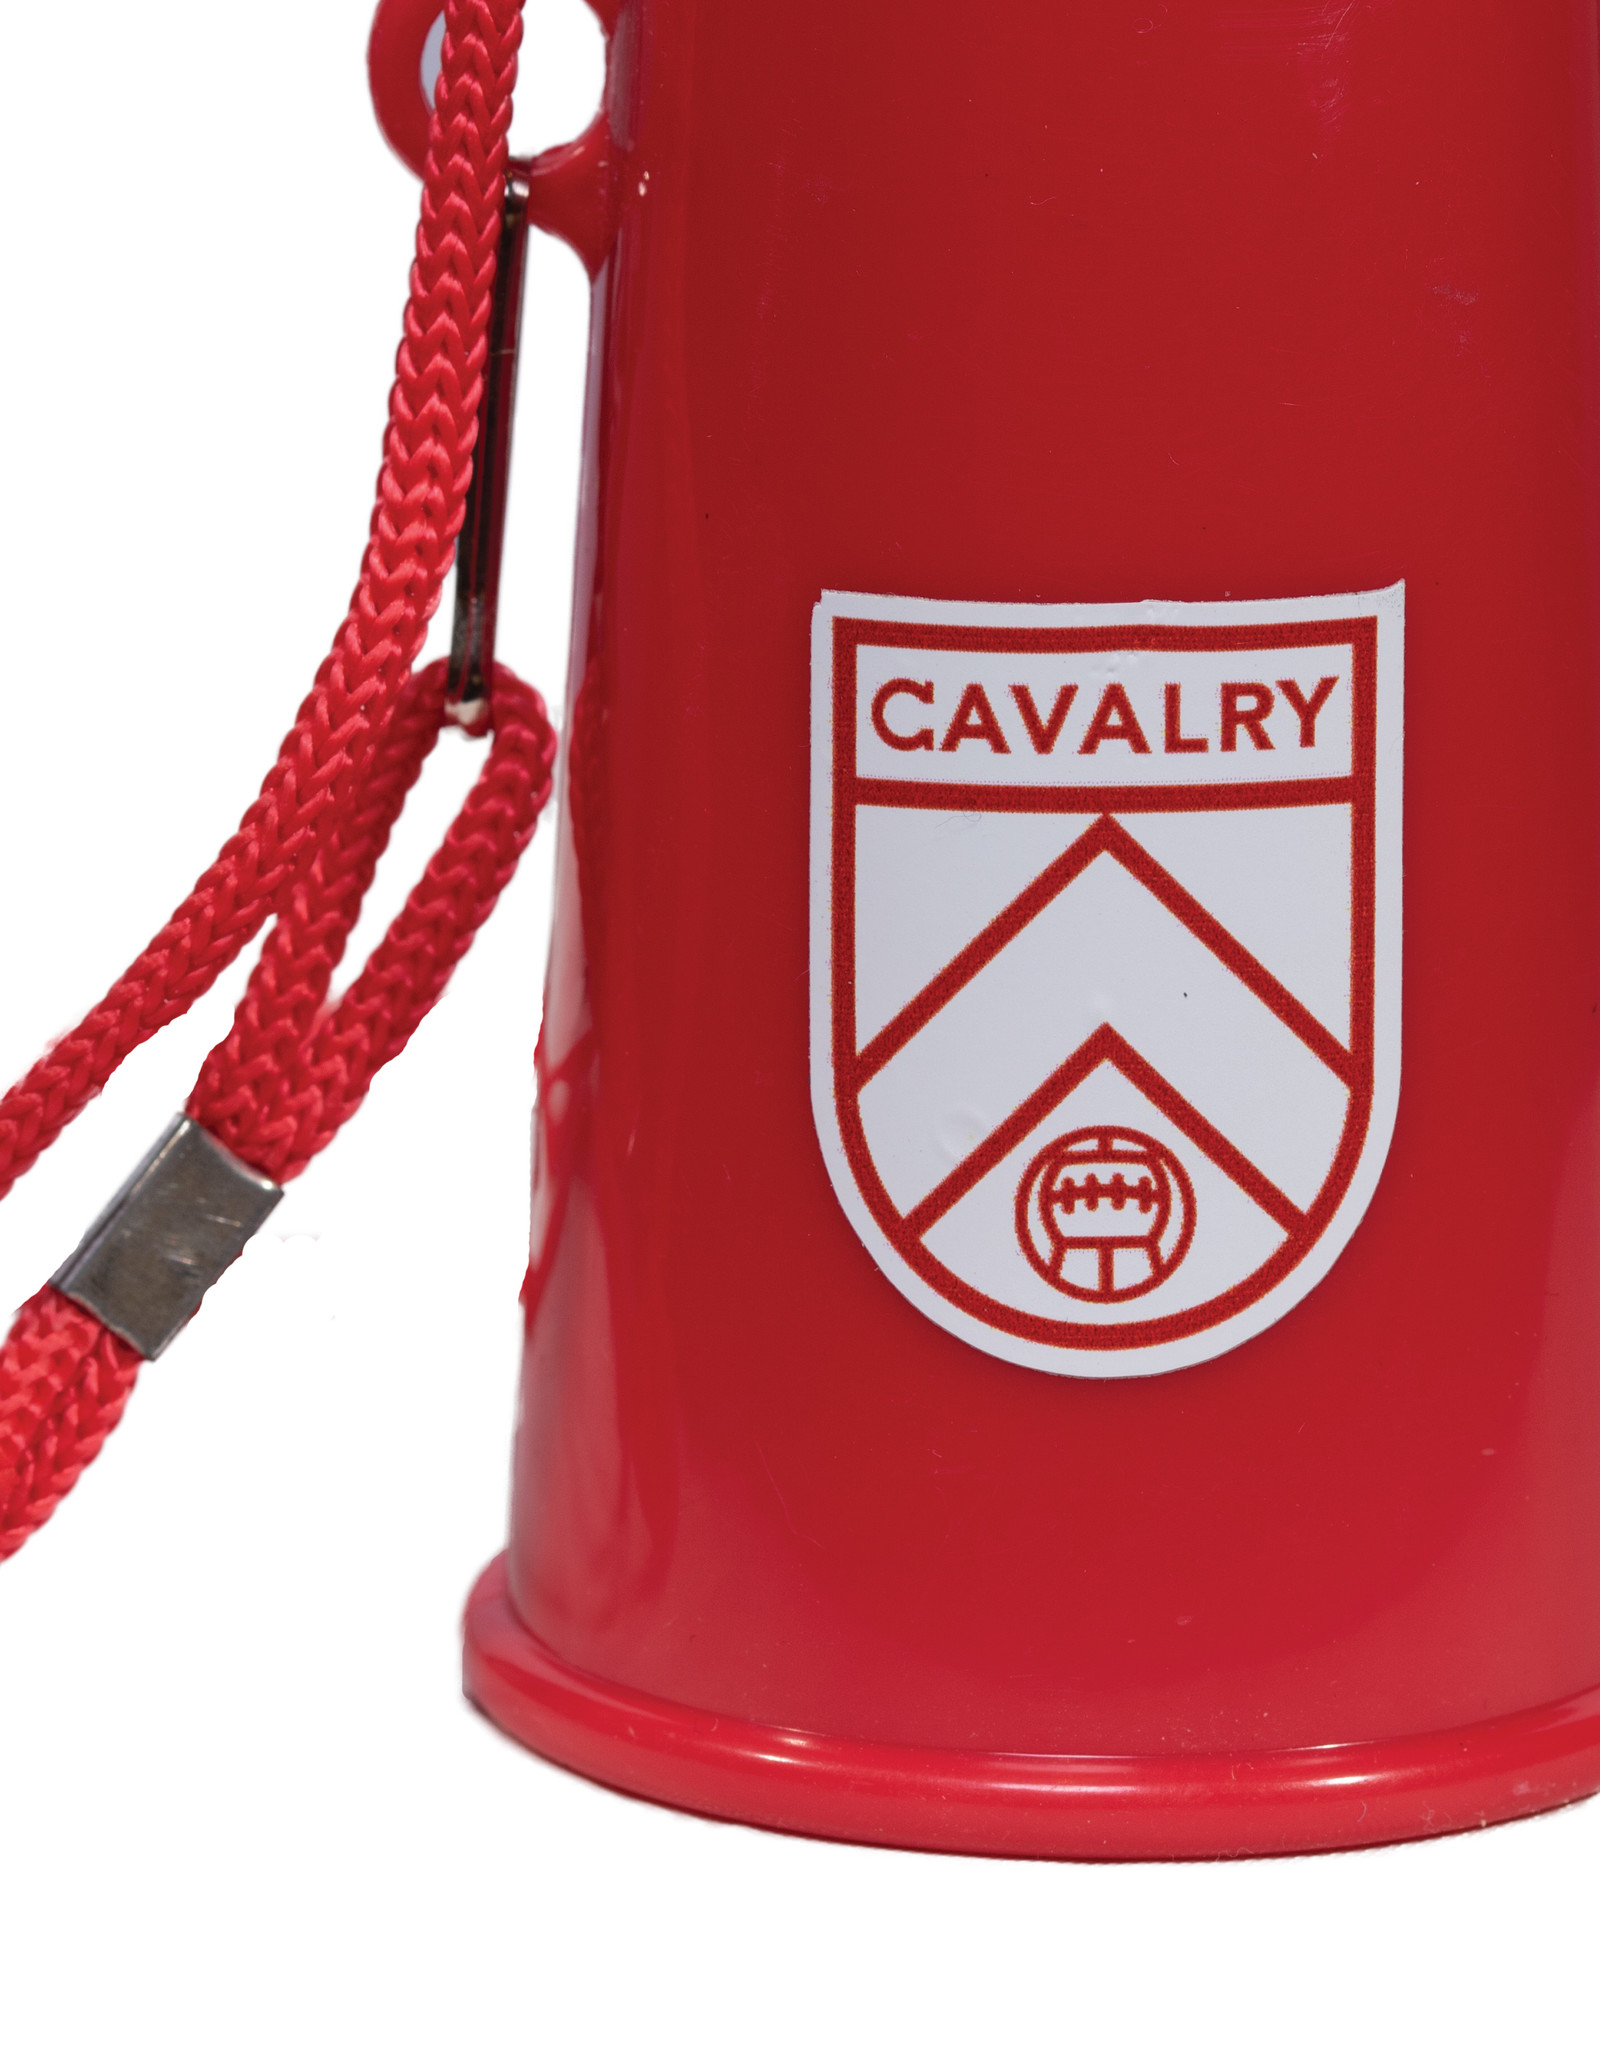 Sports Vault Cavalry FC Cheering Horn